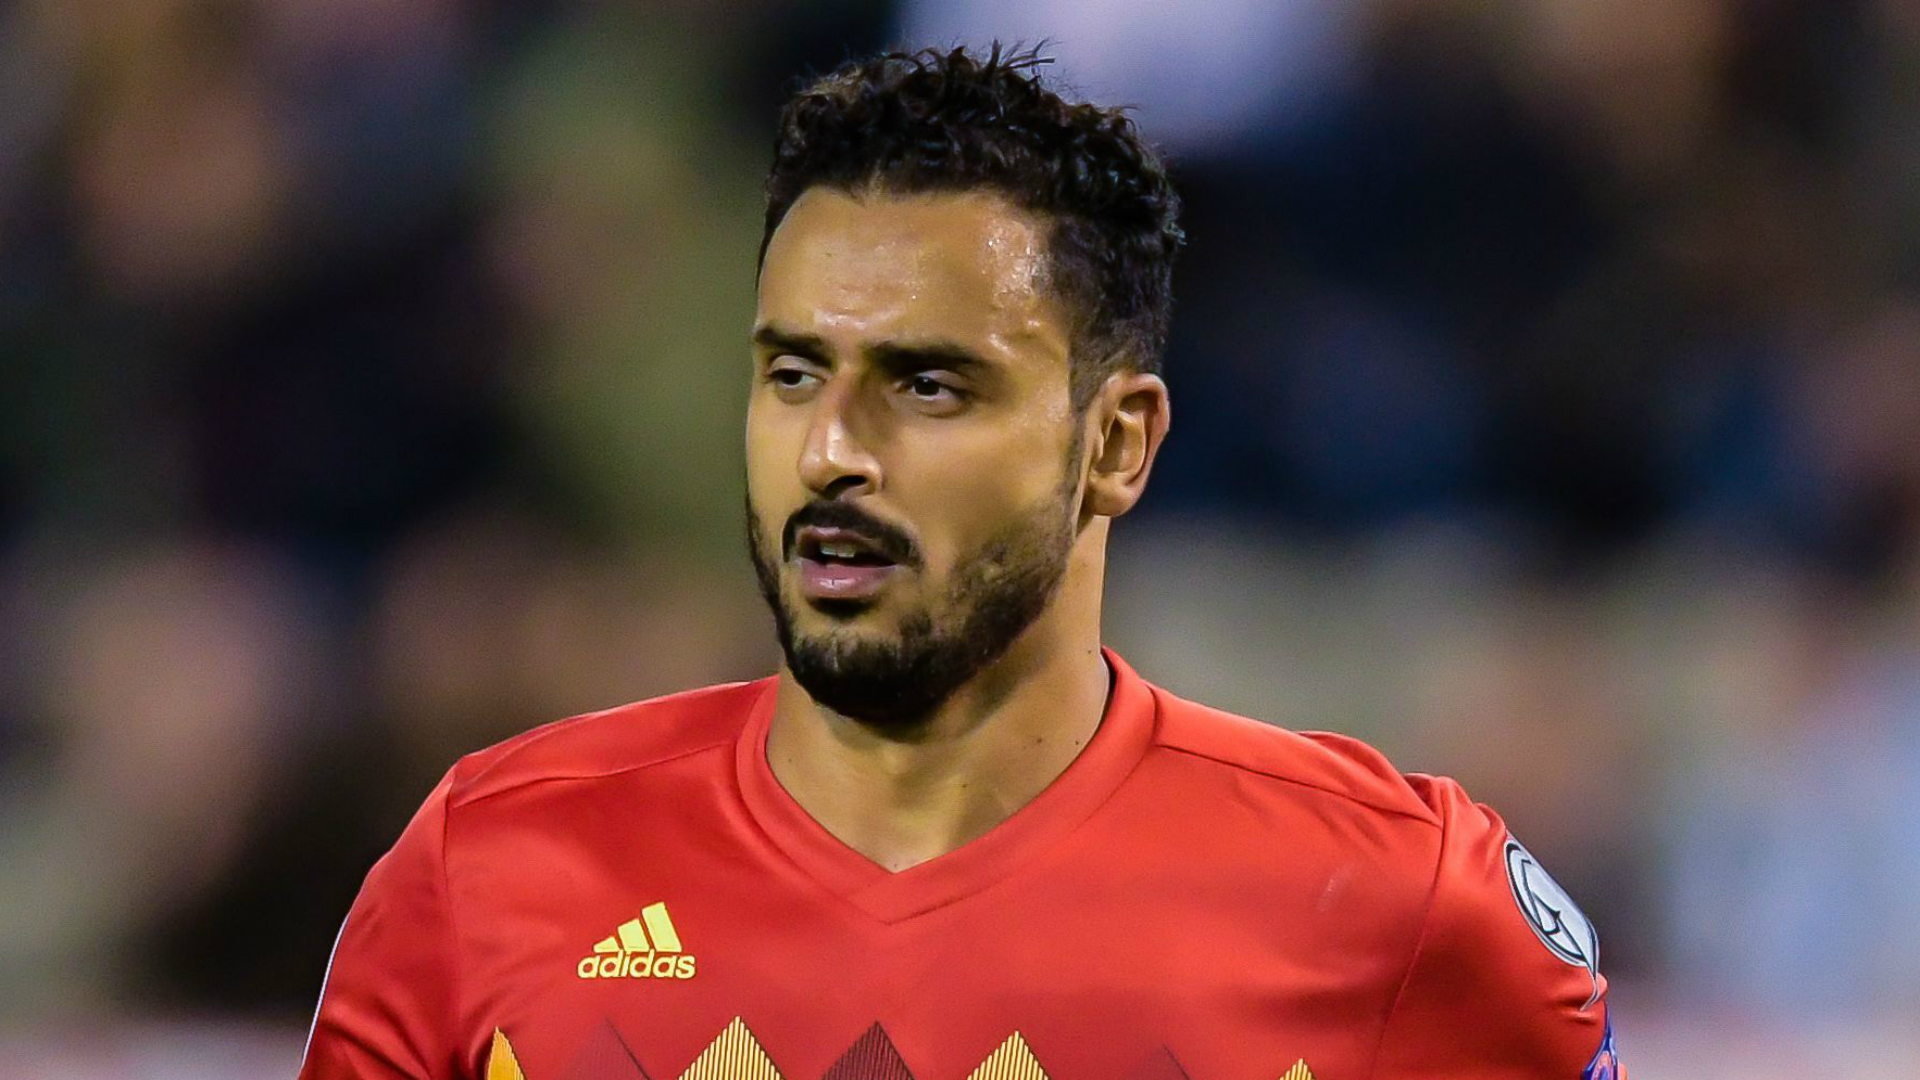 Chadli leaves Monaco to join Turkish champions